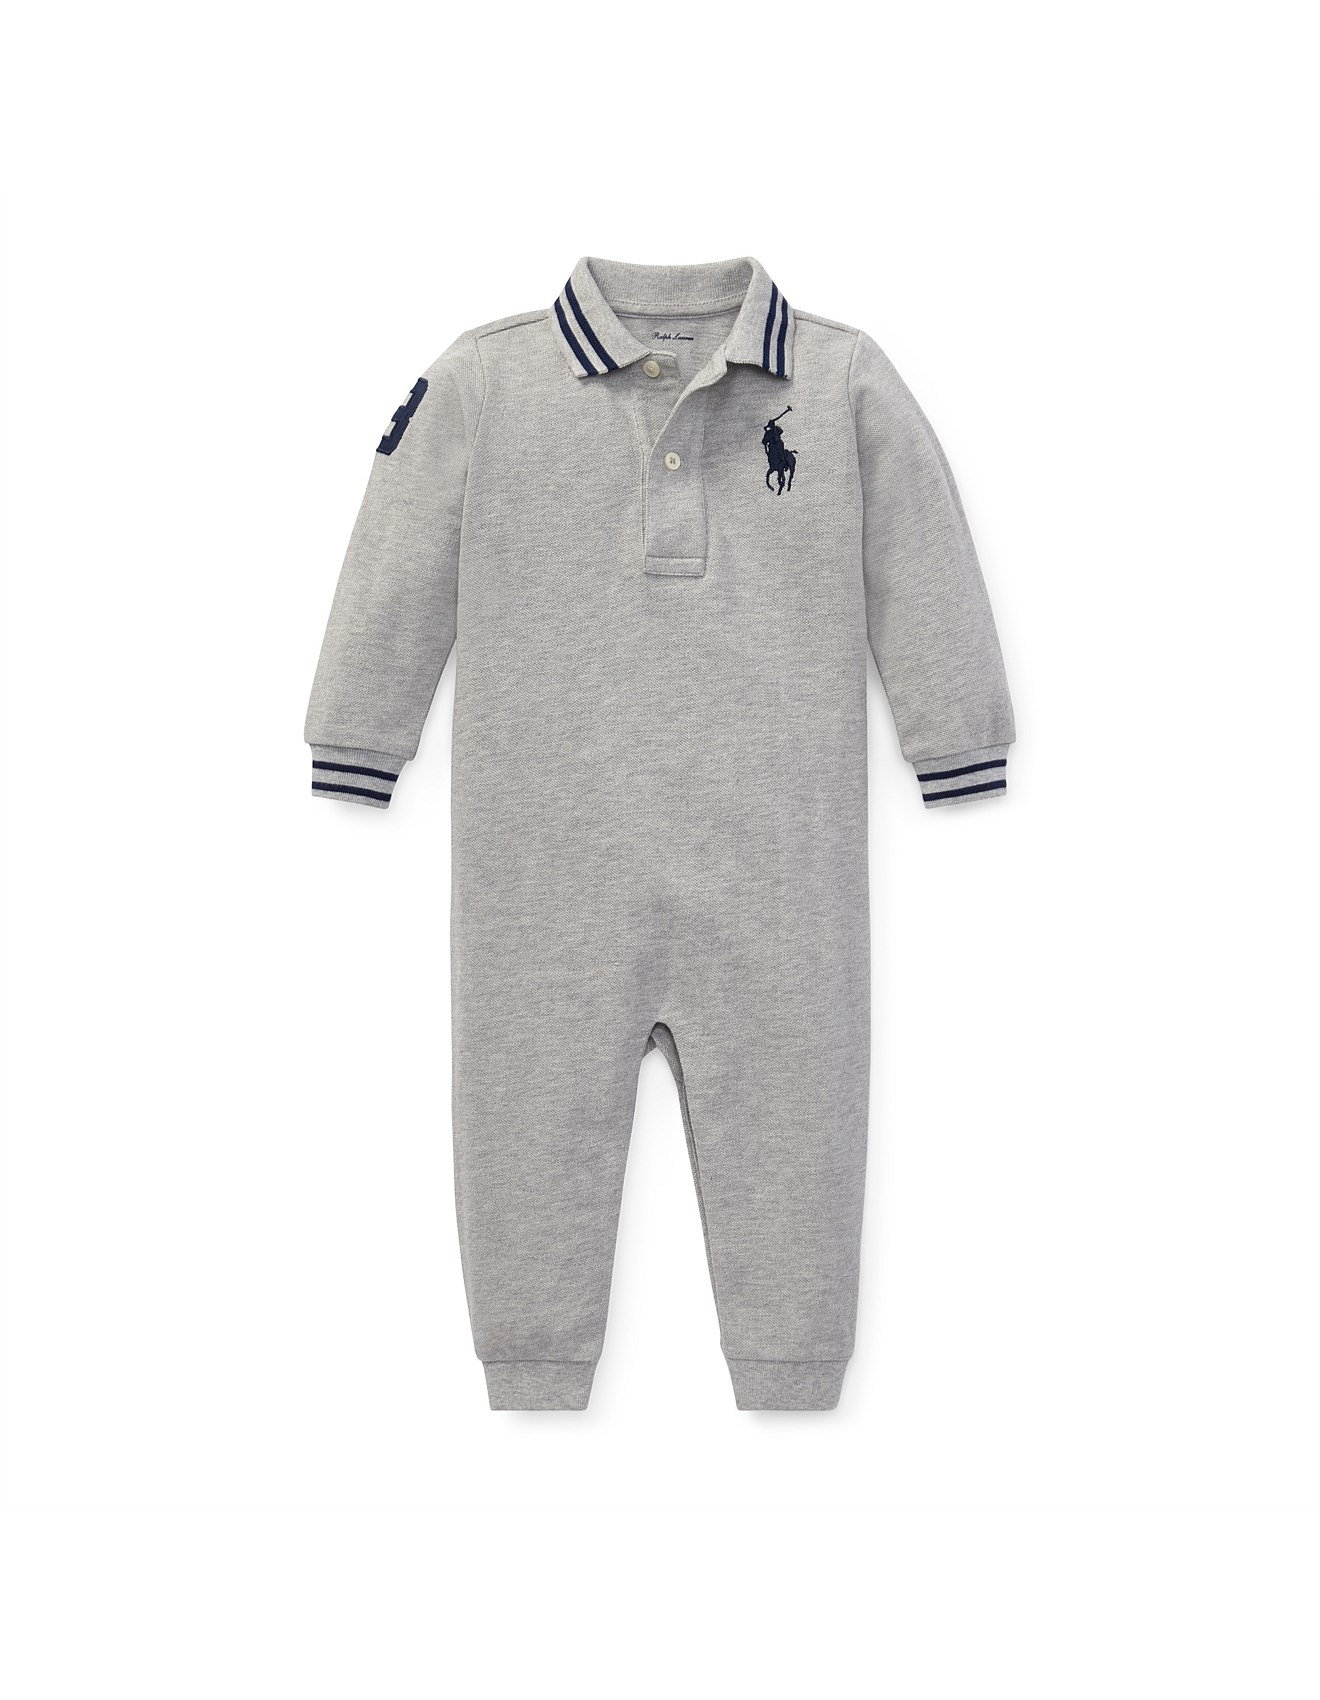 Coverall 3 Cotton Months Mesh 12 Polo u1J3lKTFc